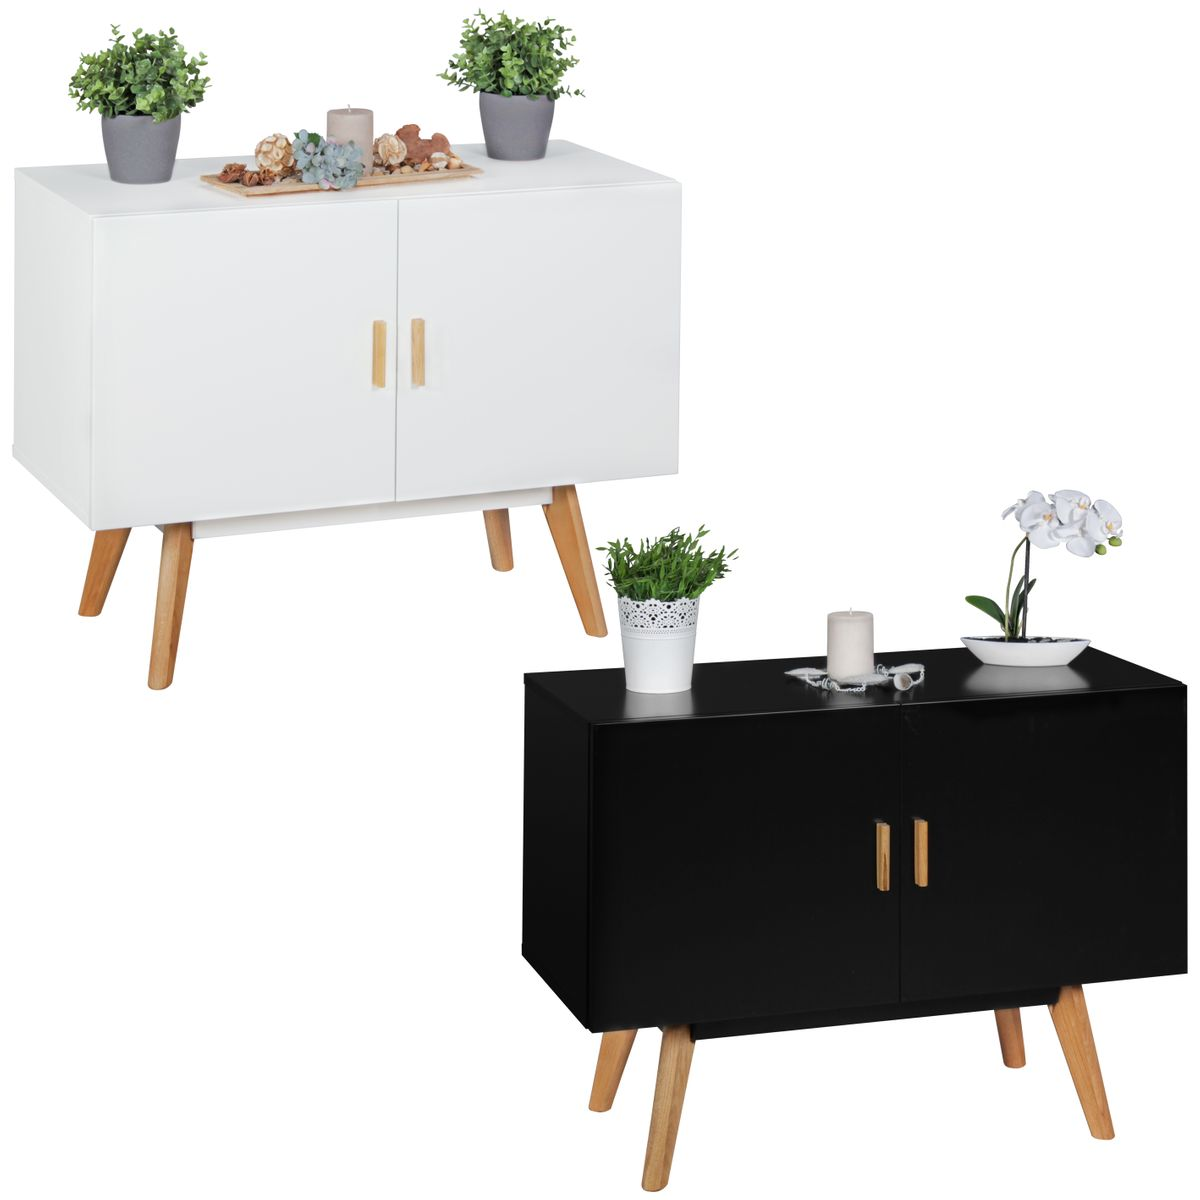 Mdf buffet enfilade scanio 90 x 40 cm commode couloir hall for Meuble 90 cm largeur